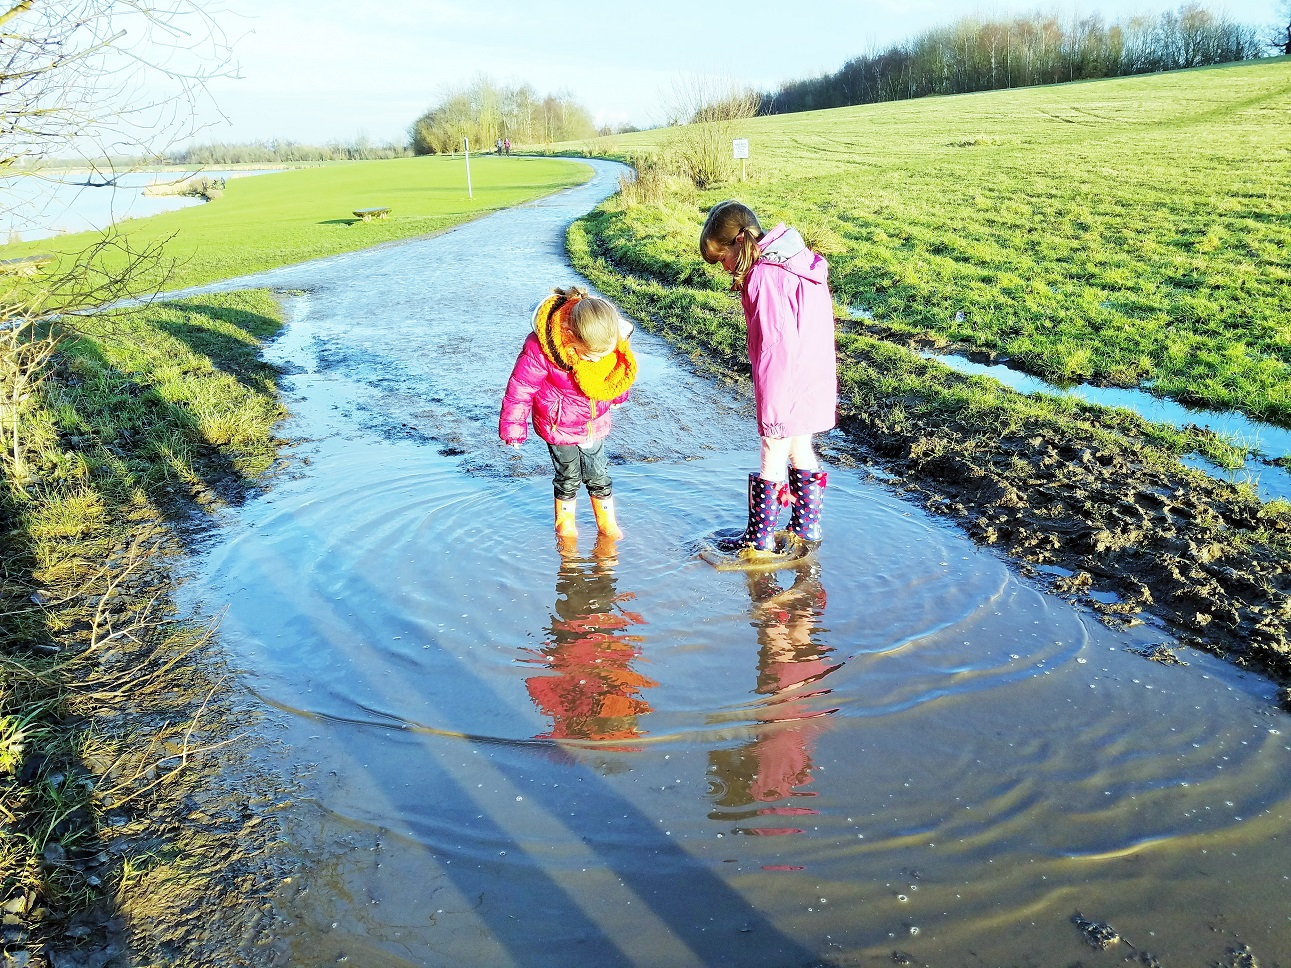 average child - children splashing in puddles together